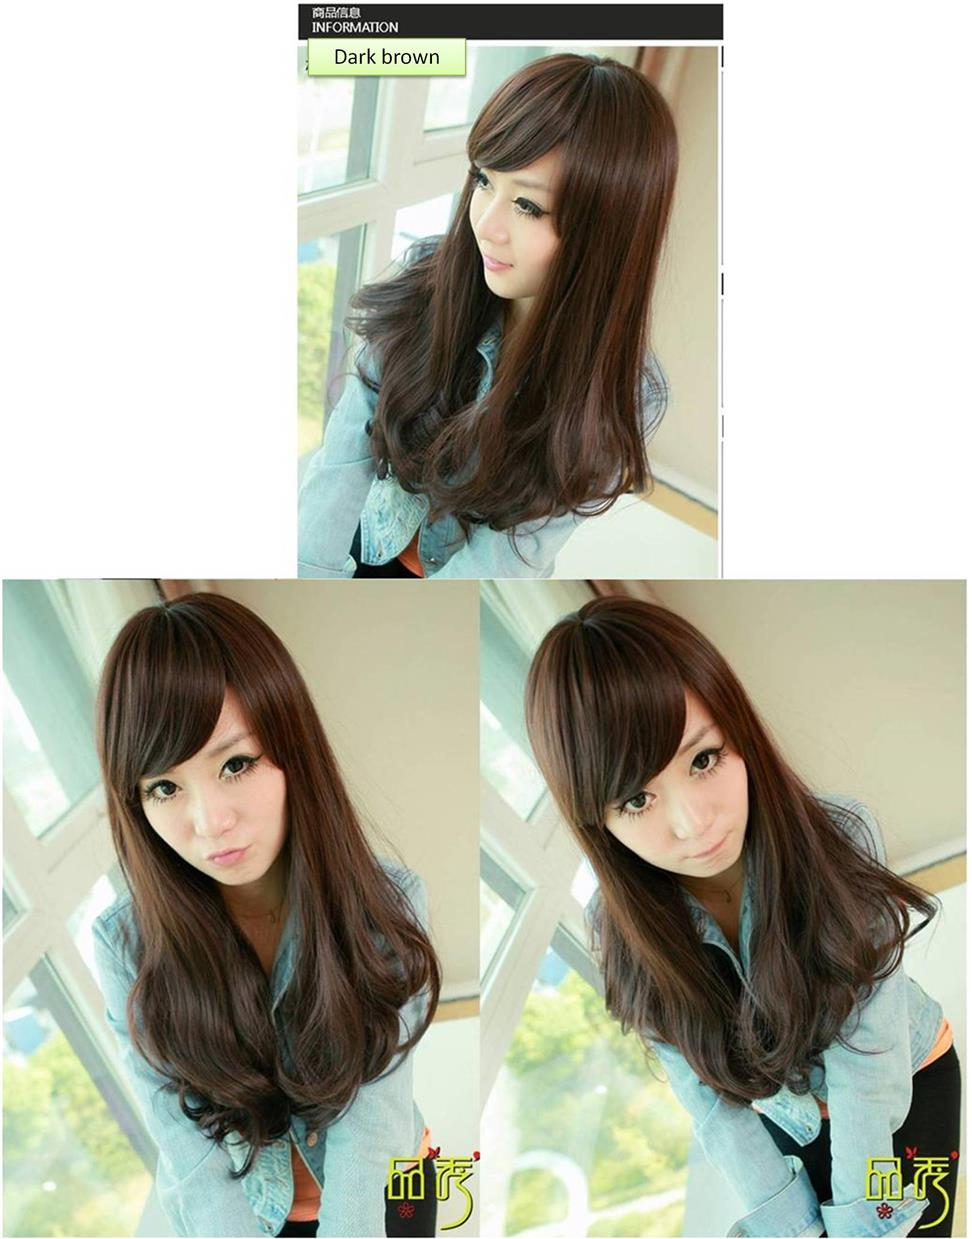 Medium wig ds5/ready stock/rambut palsu